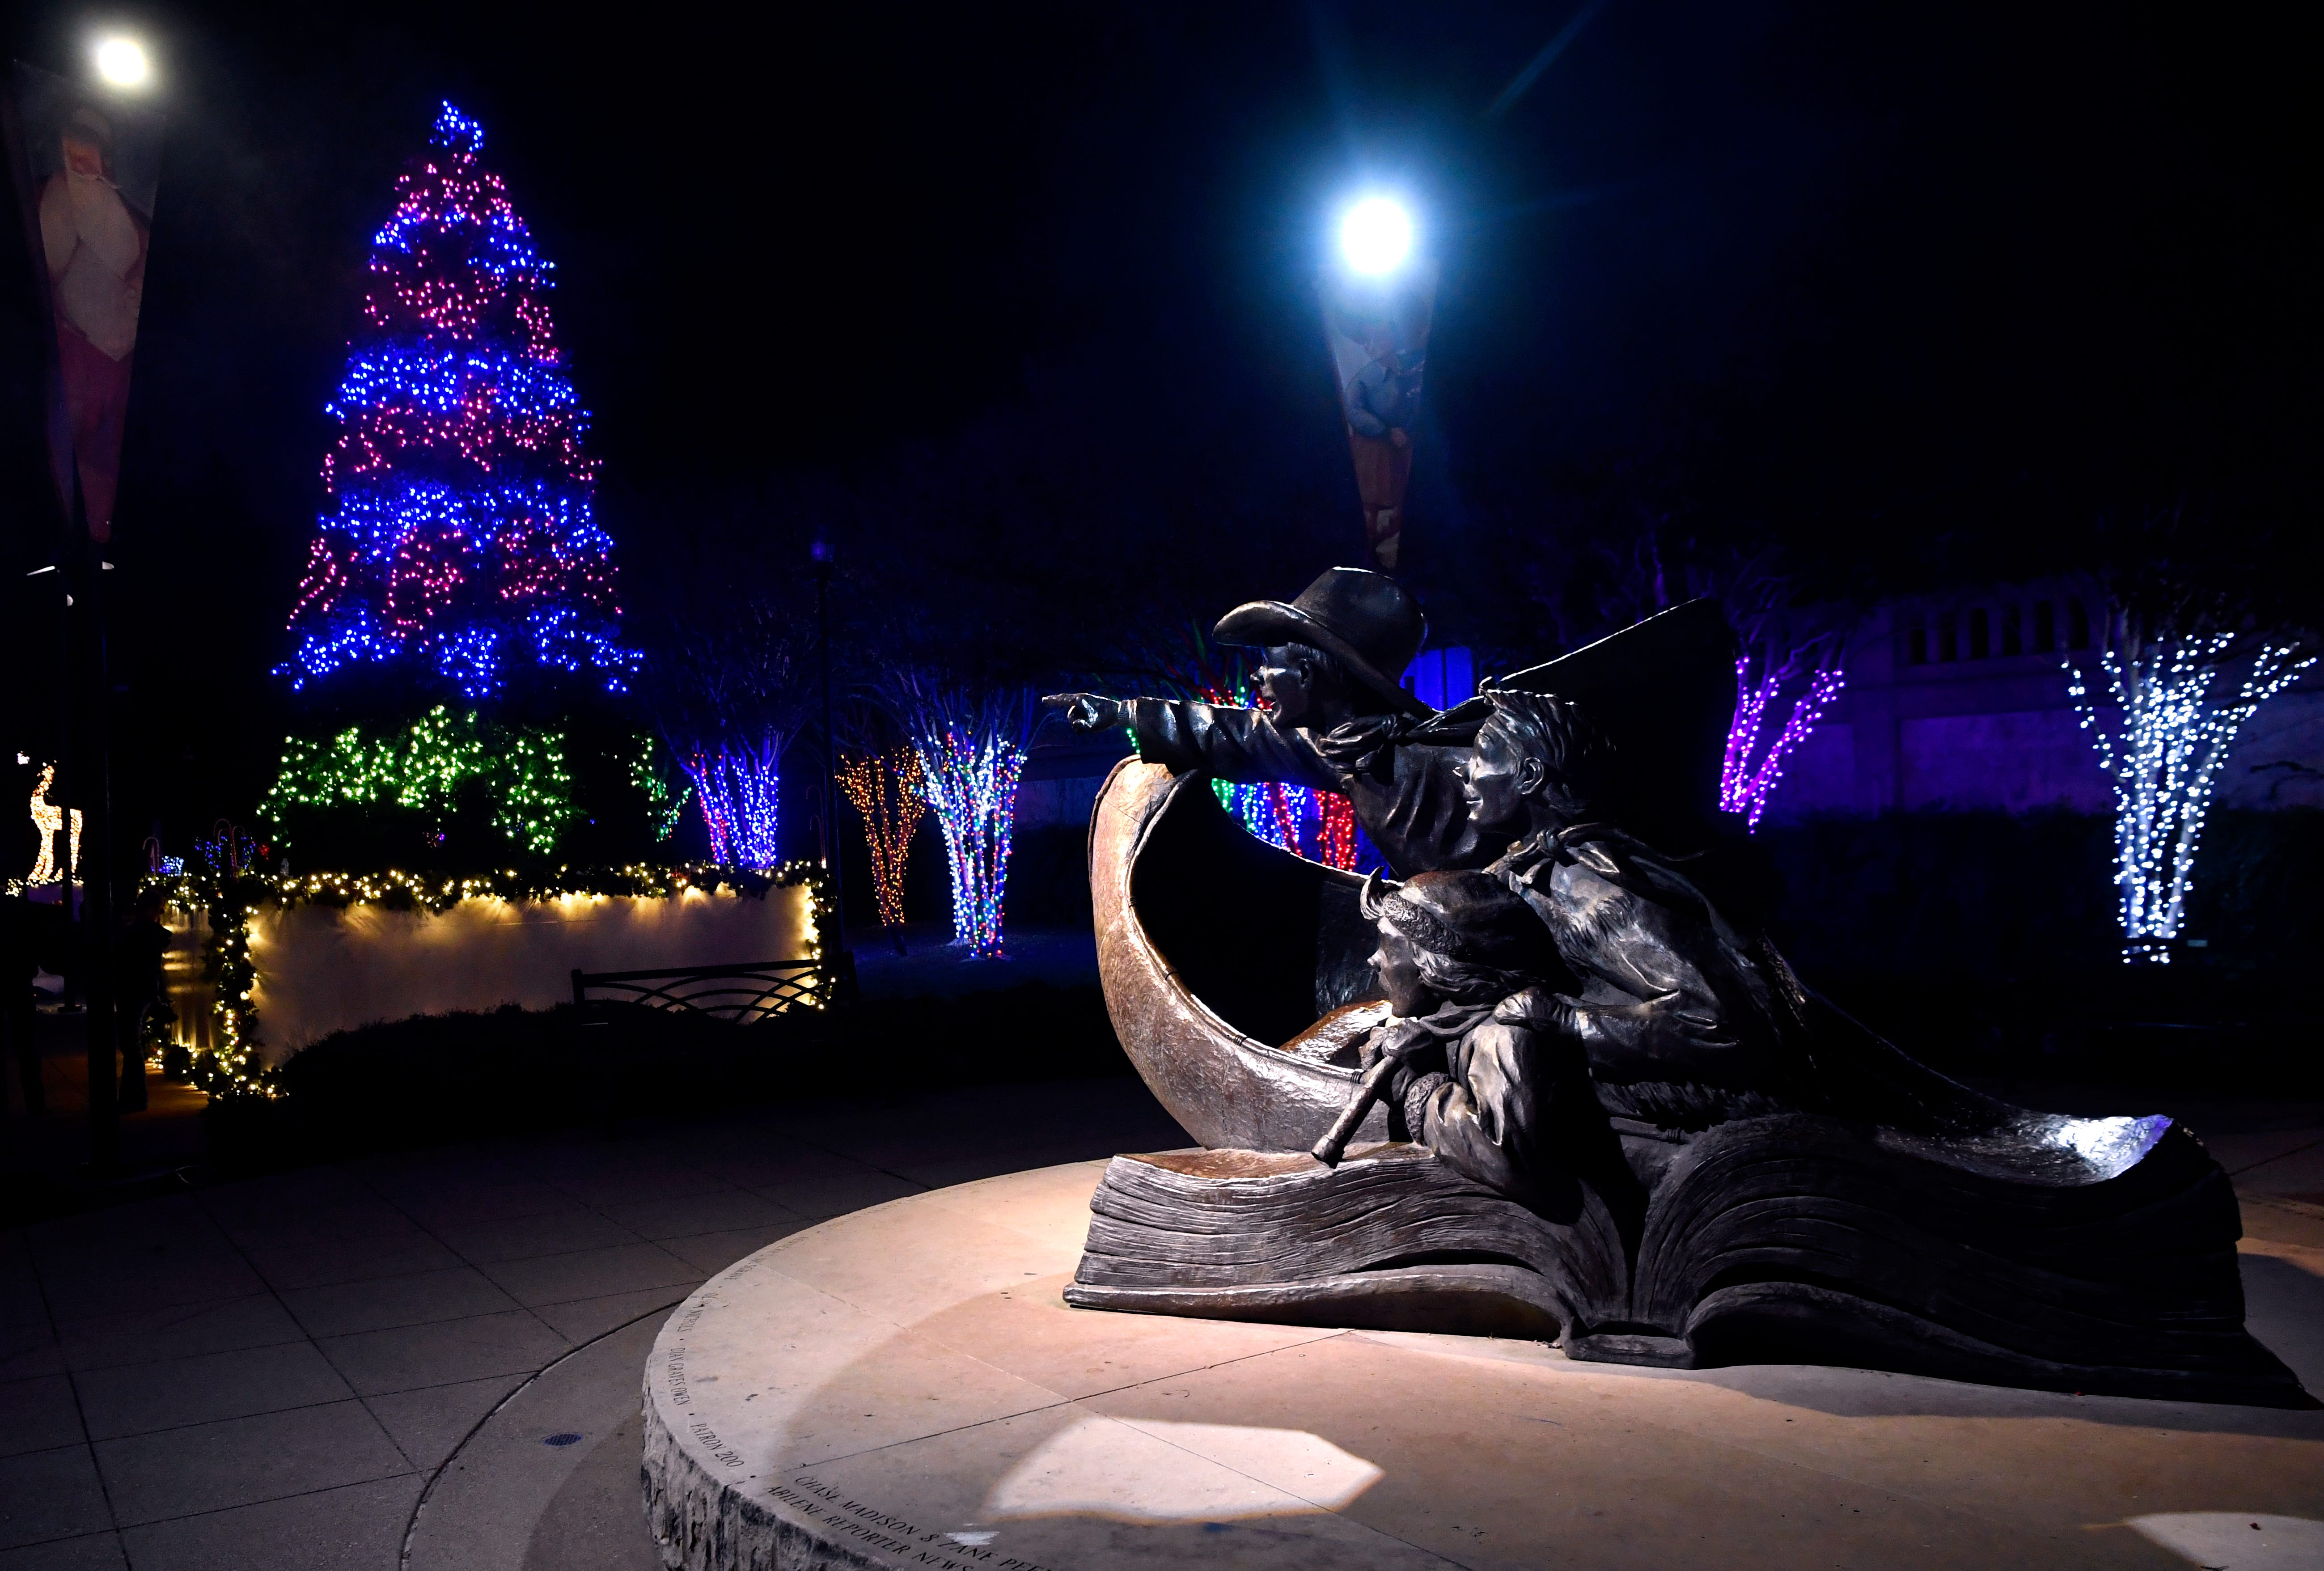 """The statue """"Childhood's Great Adventure"""" seems to point at a Christmas tree made of lights in Everman Park last fall."""